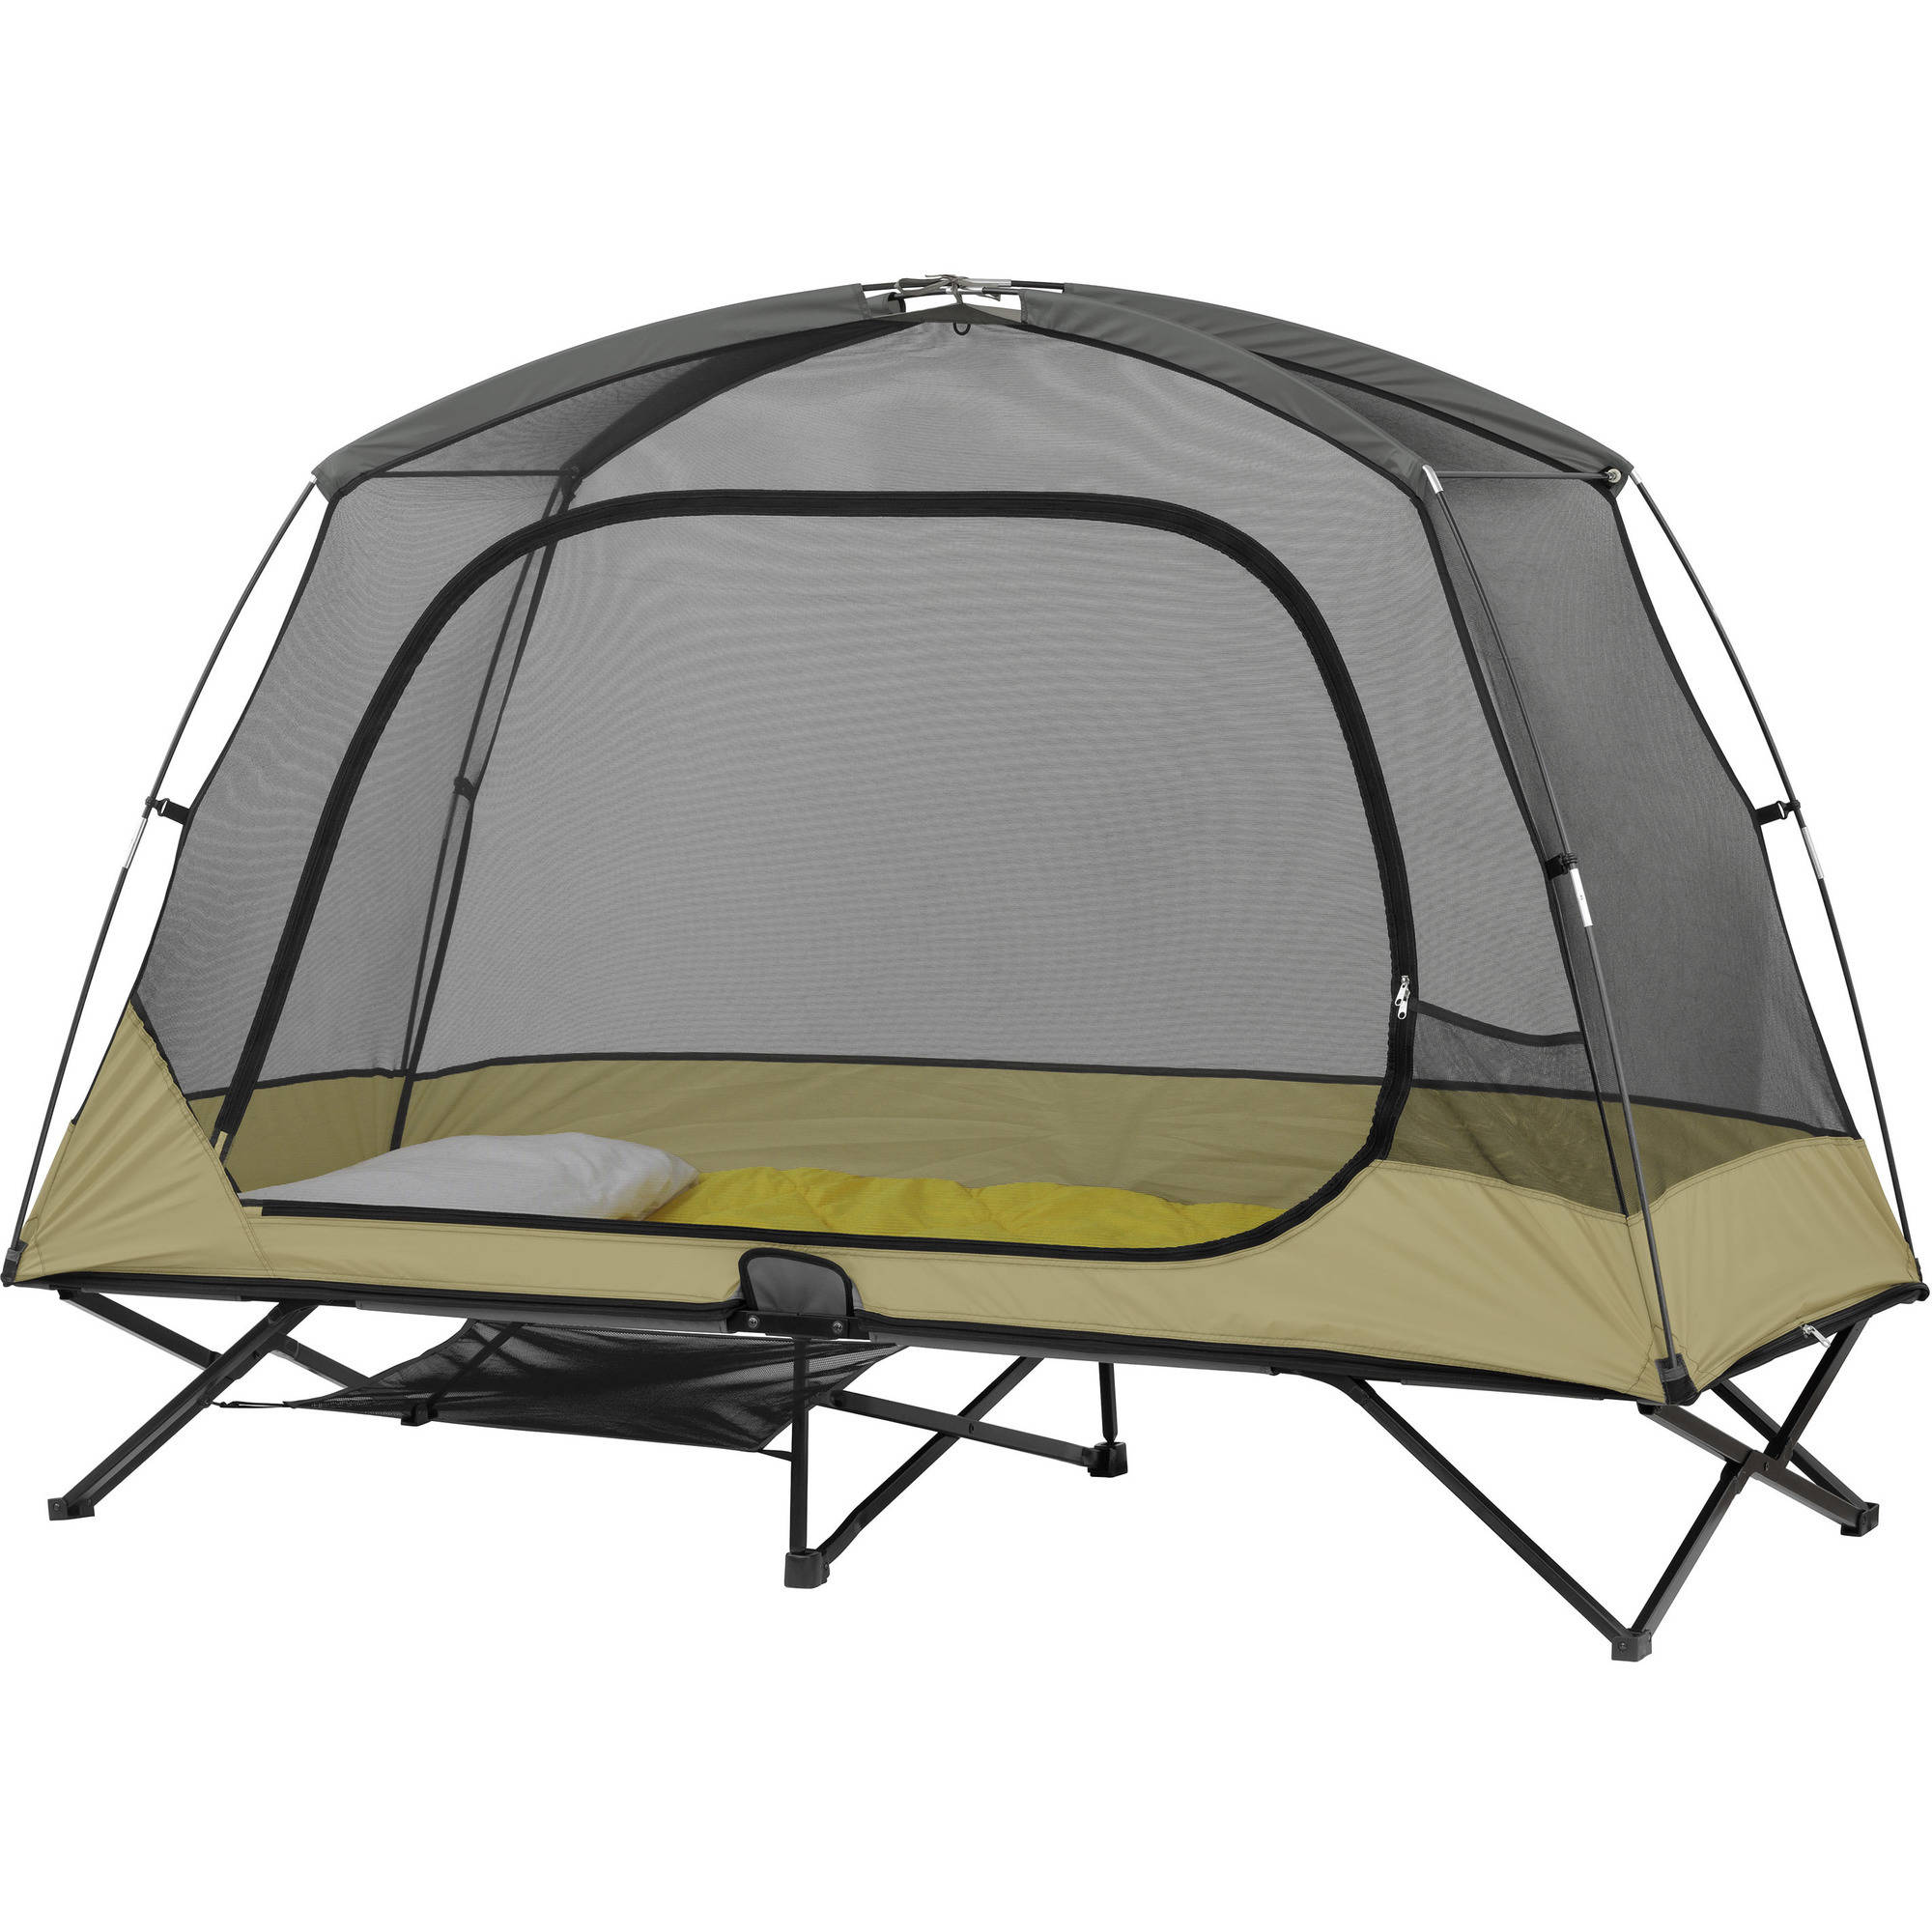 Ozark Trail One-Person Cot Instant Tent Outdoor Elevated ...